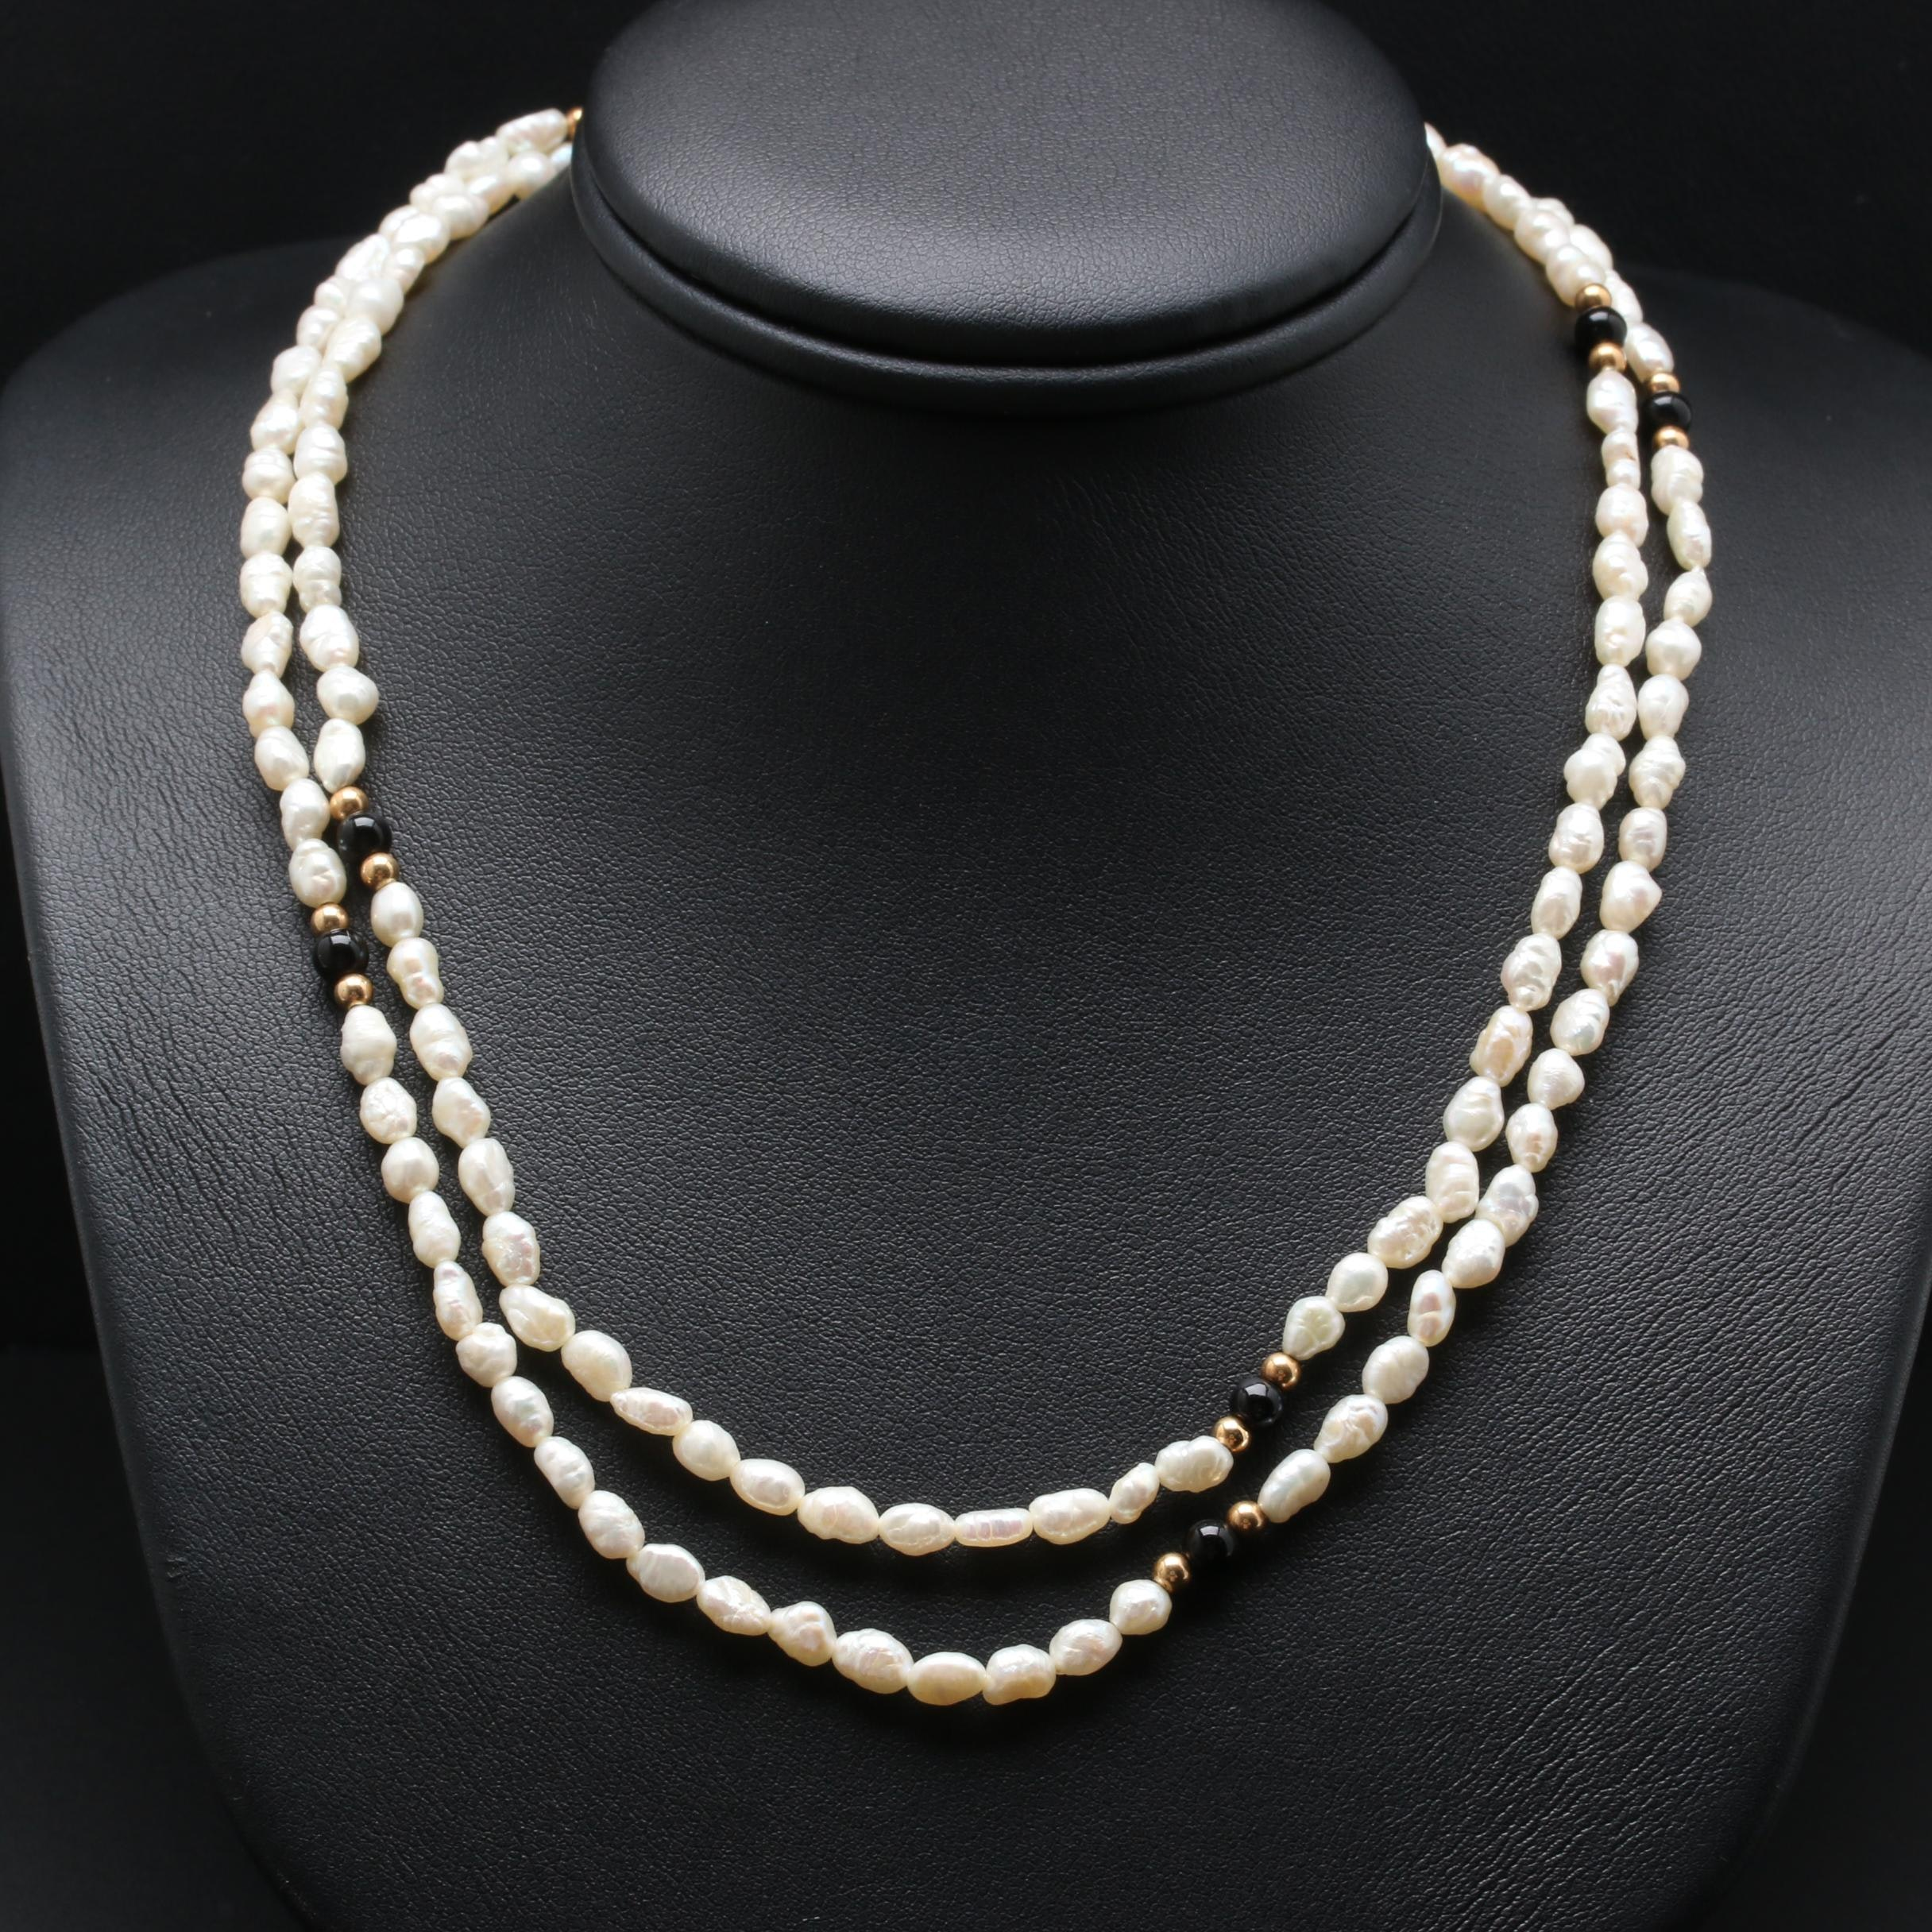 14K Yellow Gold Cultured Pearl and Black Onyx Necklace